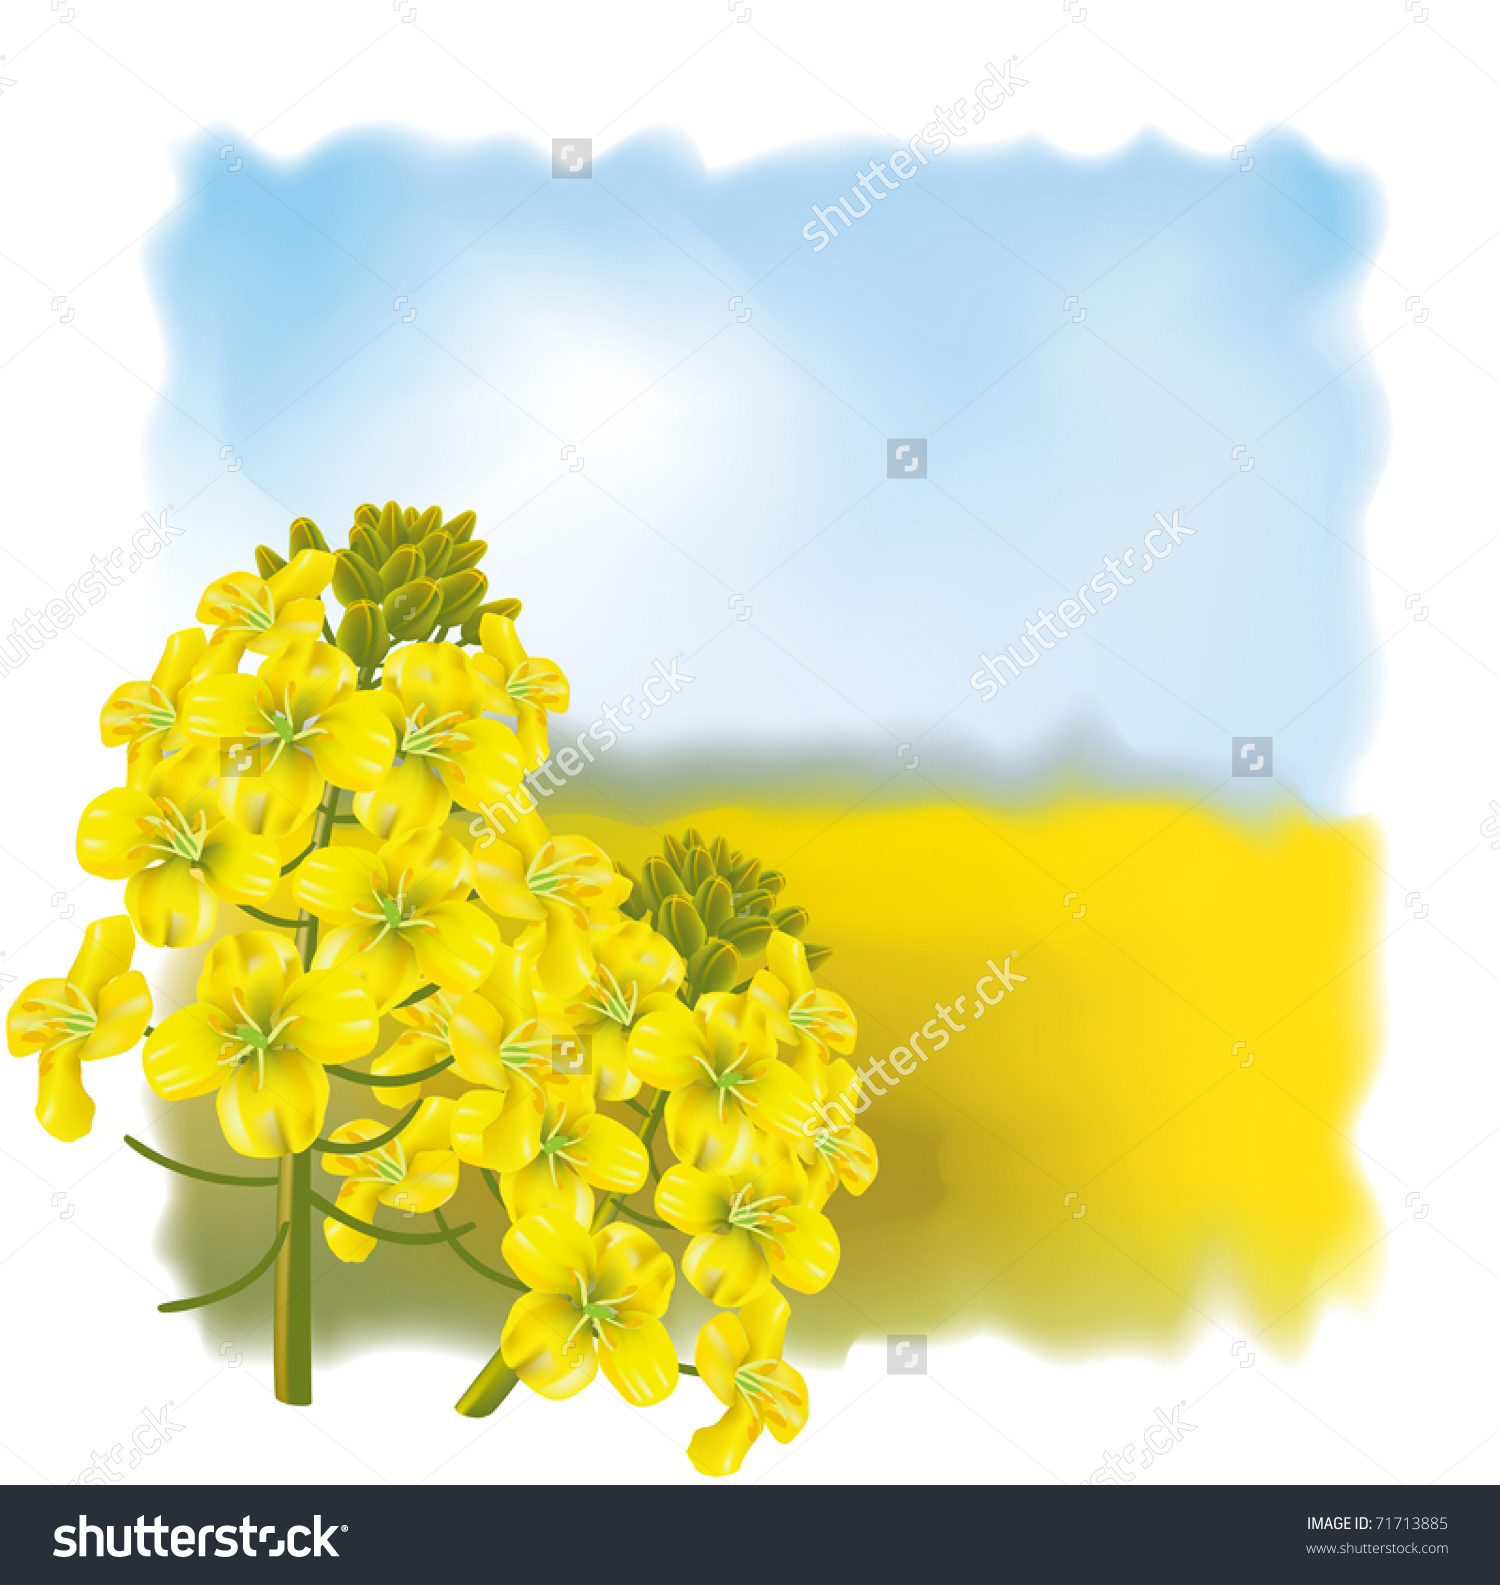 Rapeseed Flower Brassica Napus On Background Stock Vector 71713885.